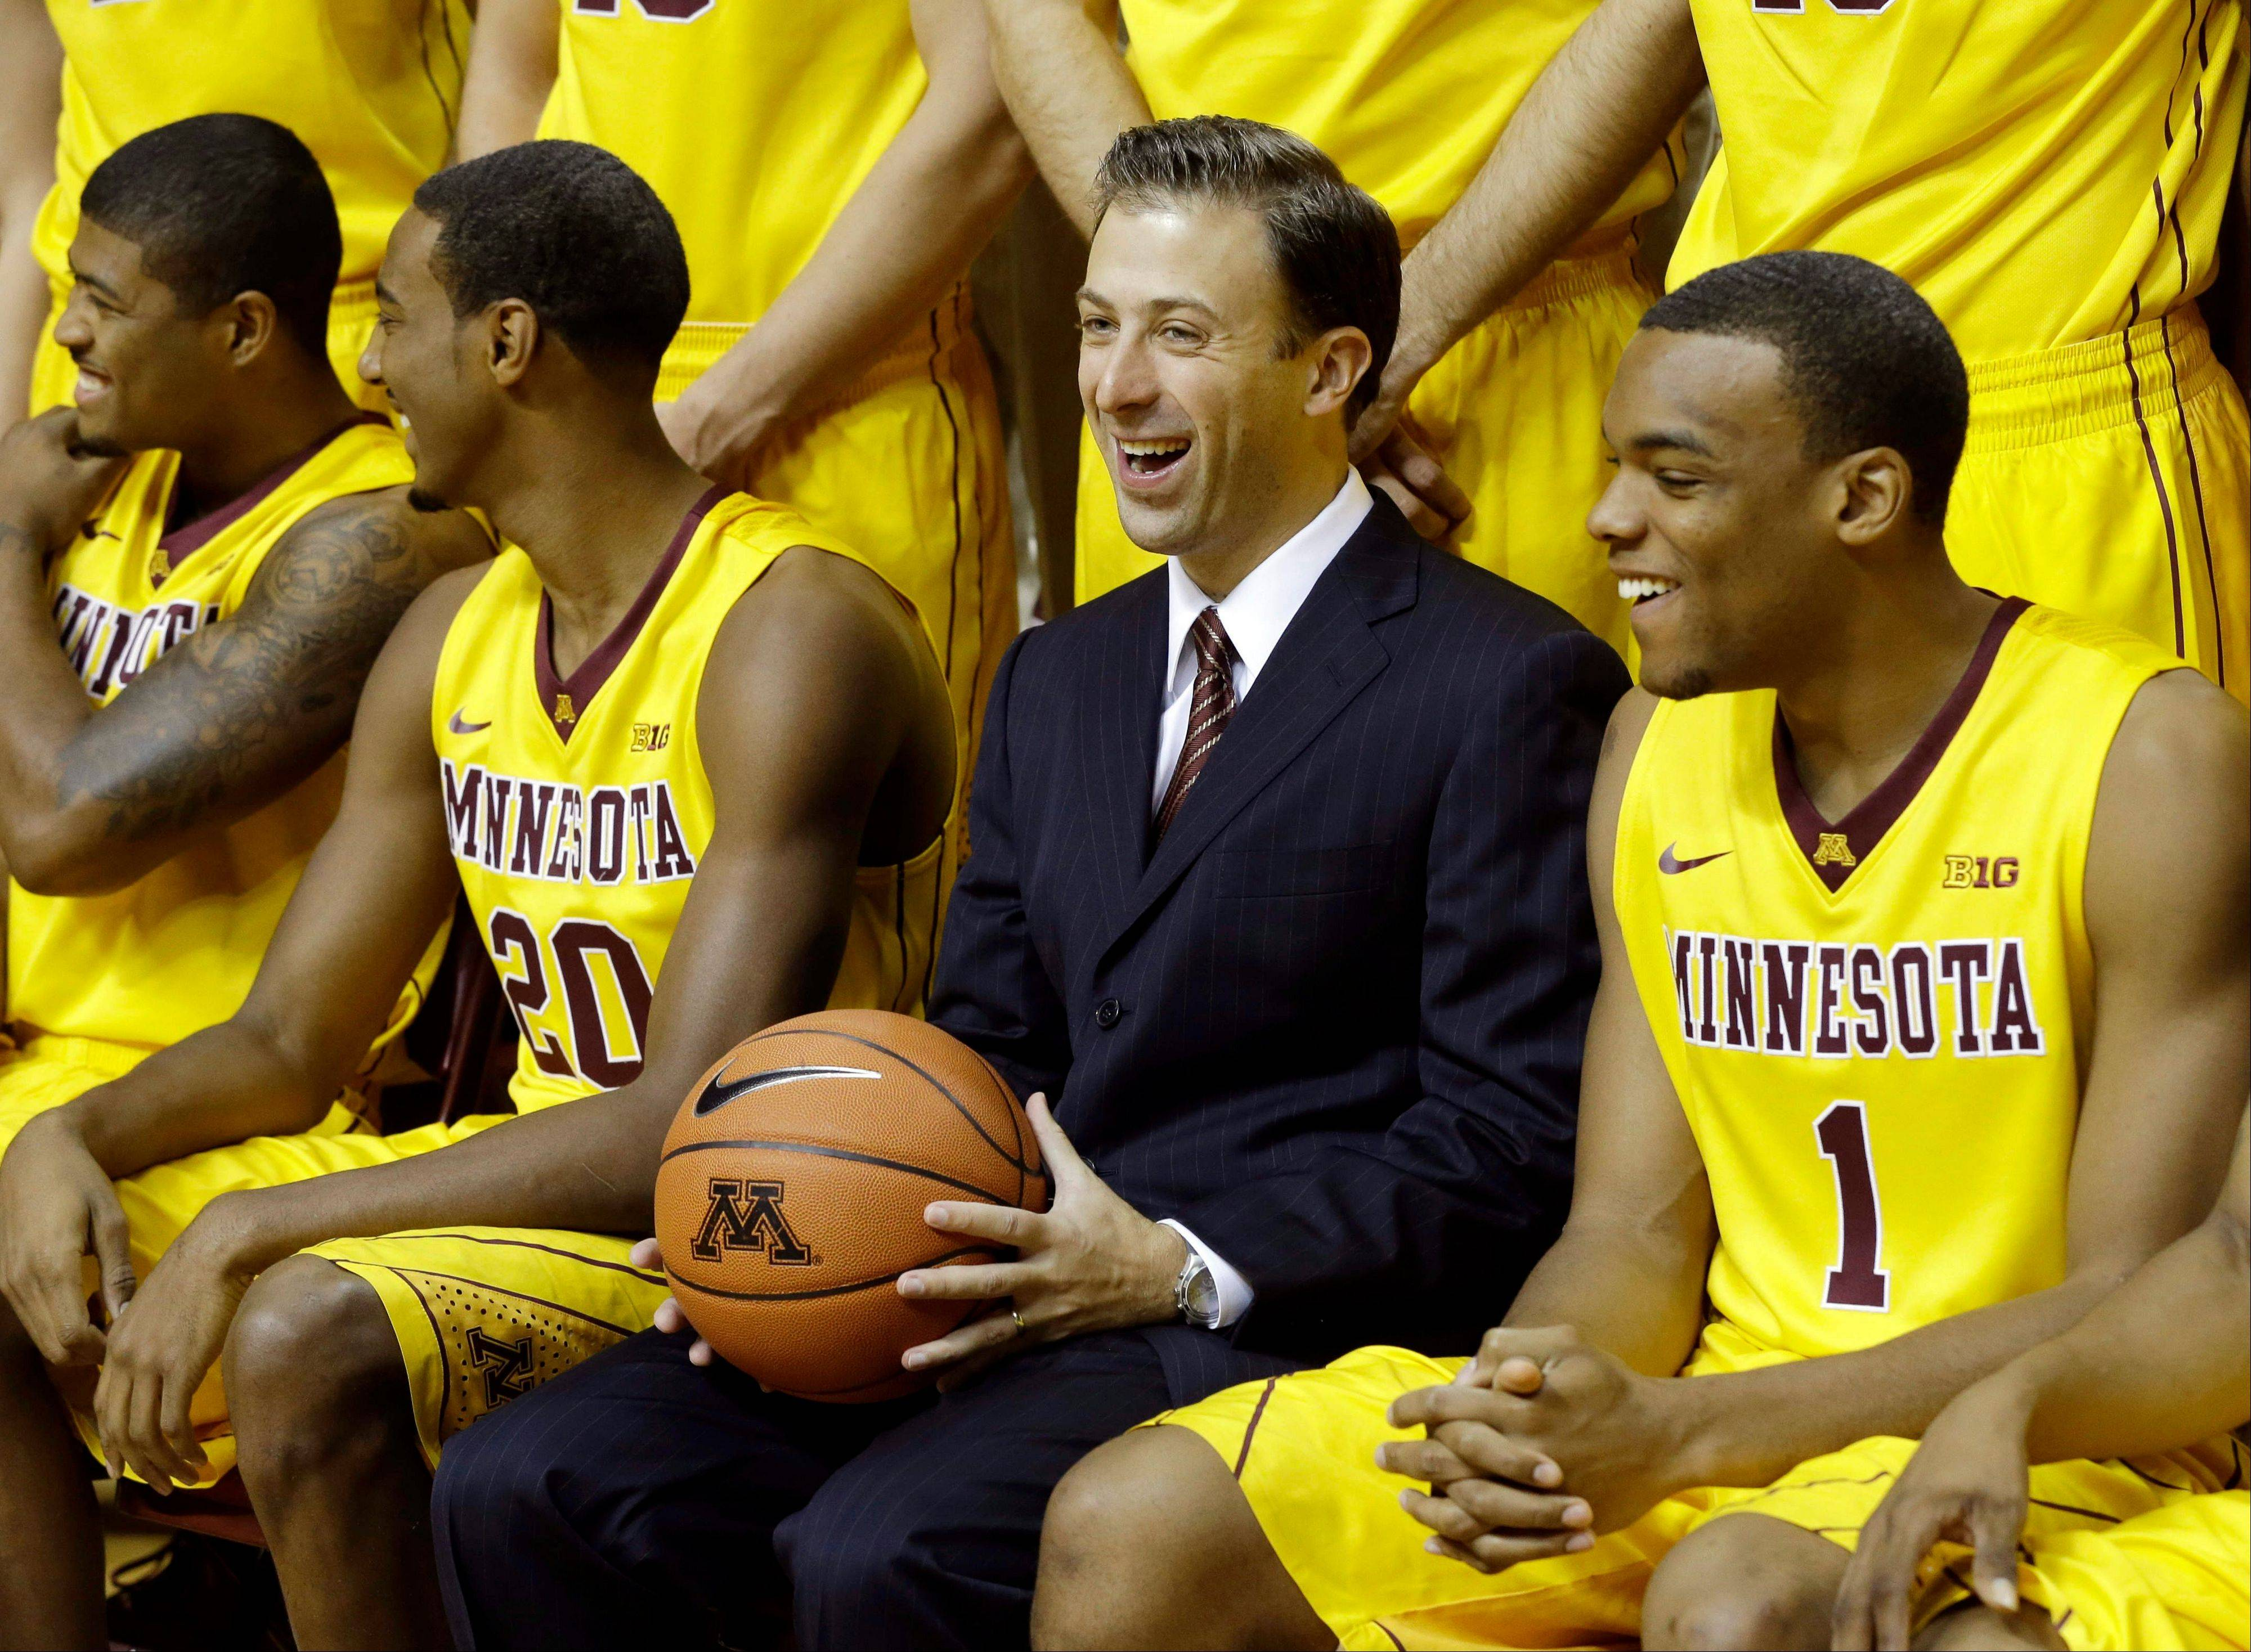 New Minnesota men's basketball coach Richard Pitino enjoys a laugh along with, from left, Maverick Ahanmisi, Austin Hollins and Andre Hollins during the setup for the formal team portrait Monday in Minneapolis.